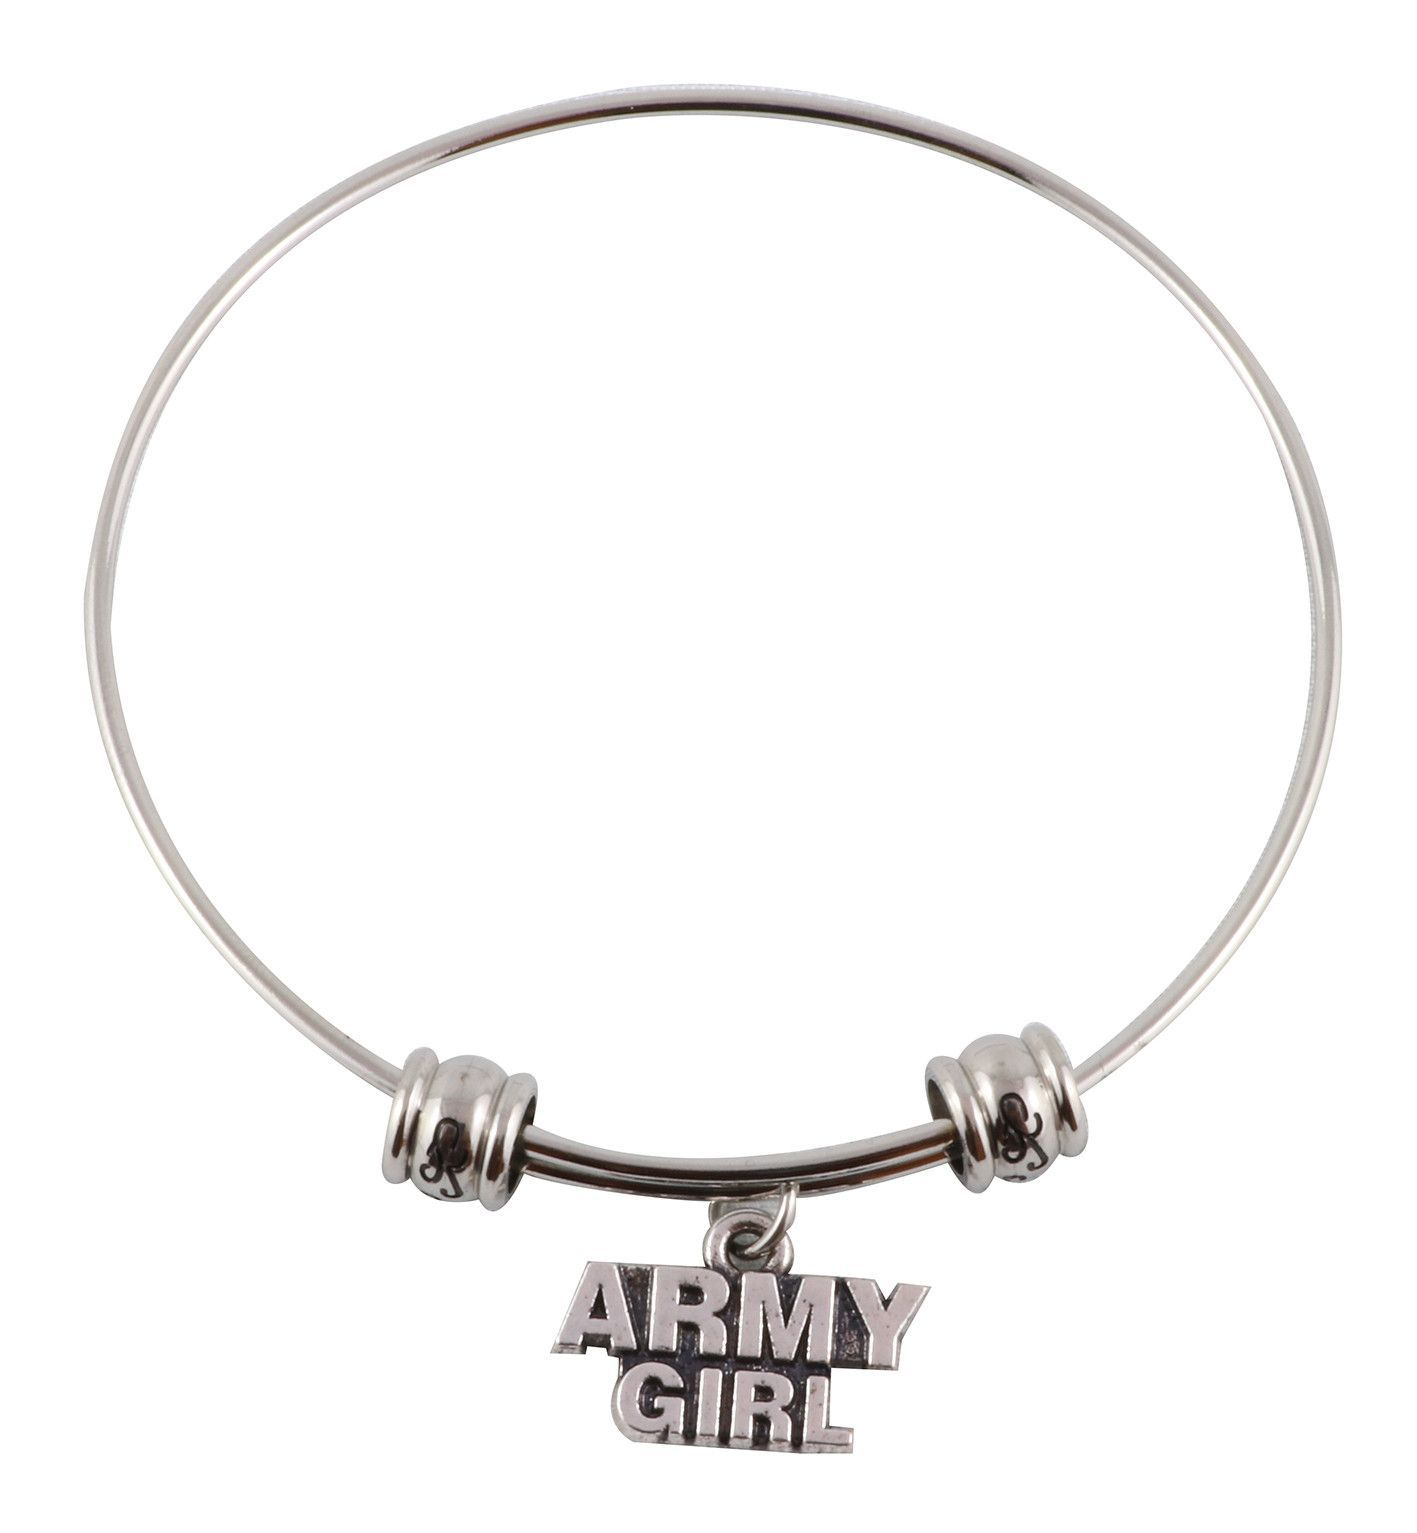 Army girl stainless steel charm bracelet trend jewelry